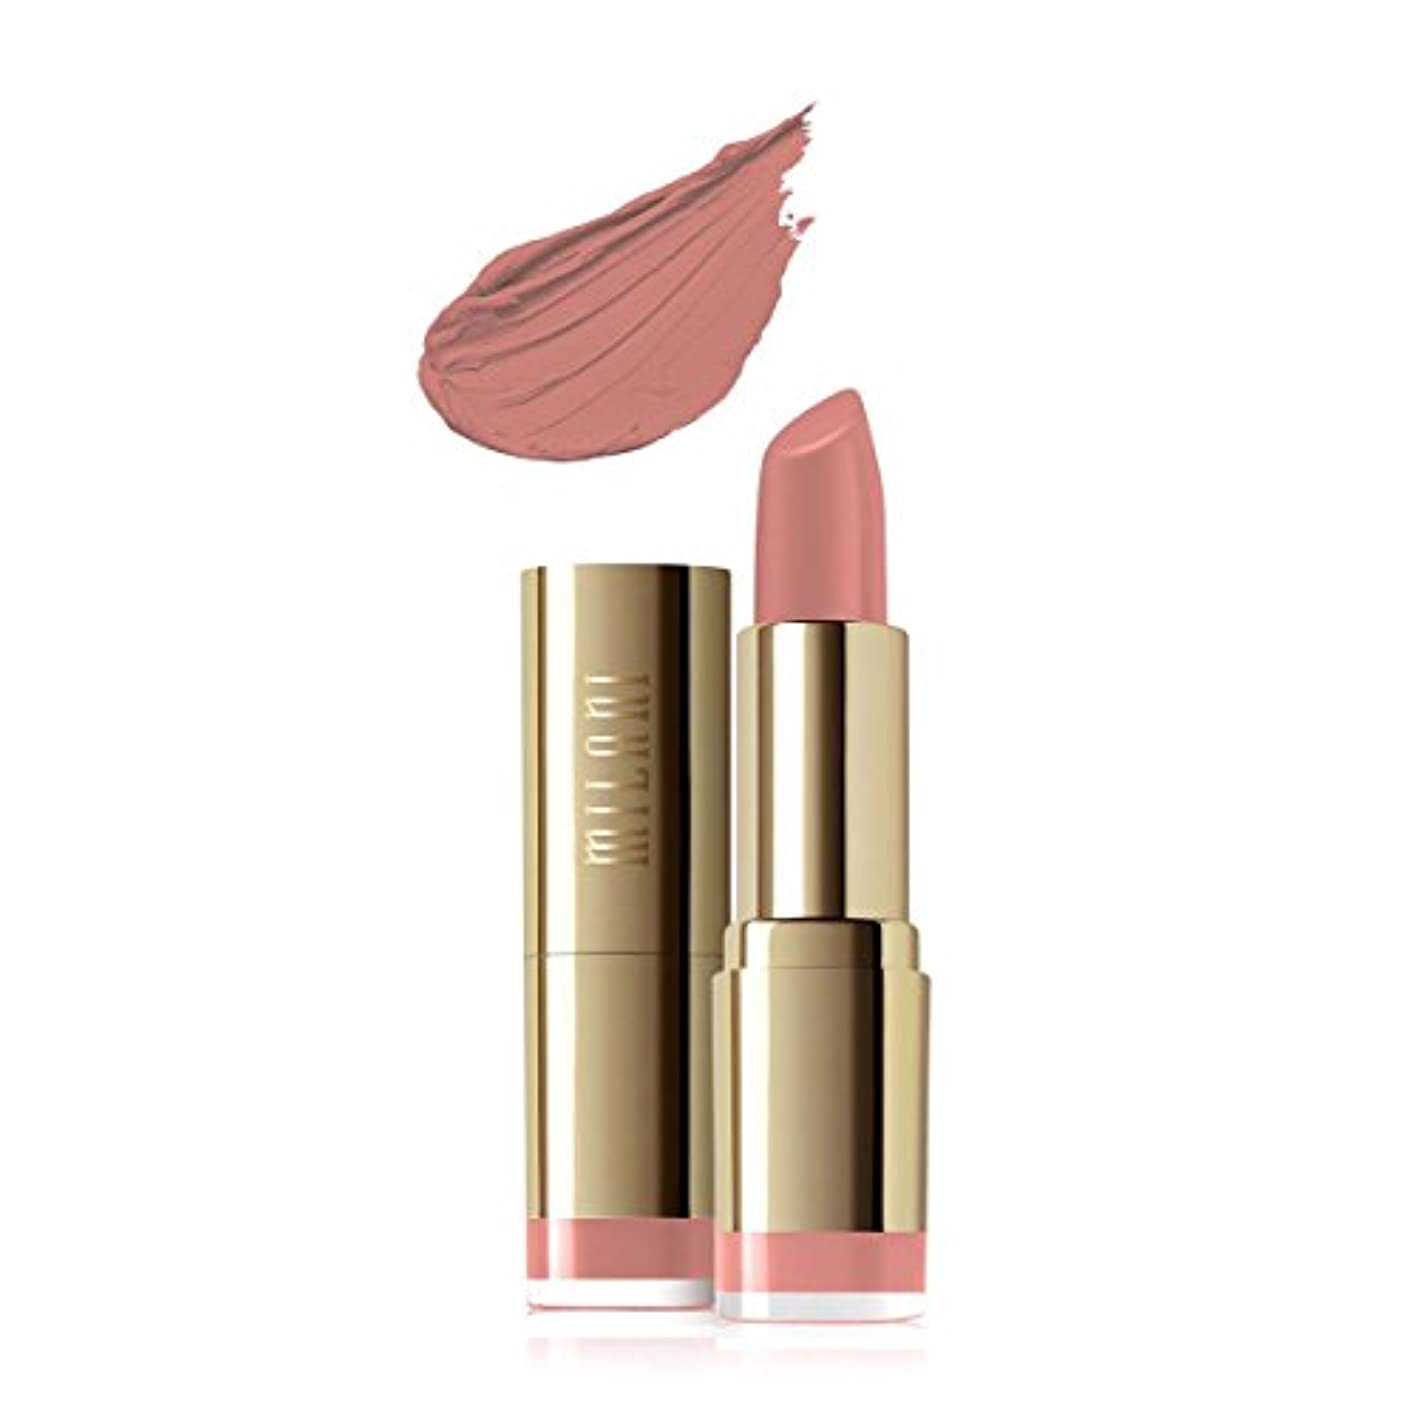 適応する膨らませる同盟MILANI Color Statement Moisture Matte Lipstick - Matte Naked (Vegan) (並行輸入品)